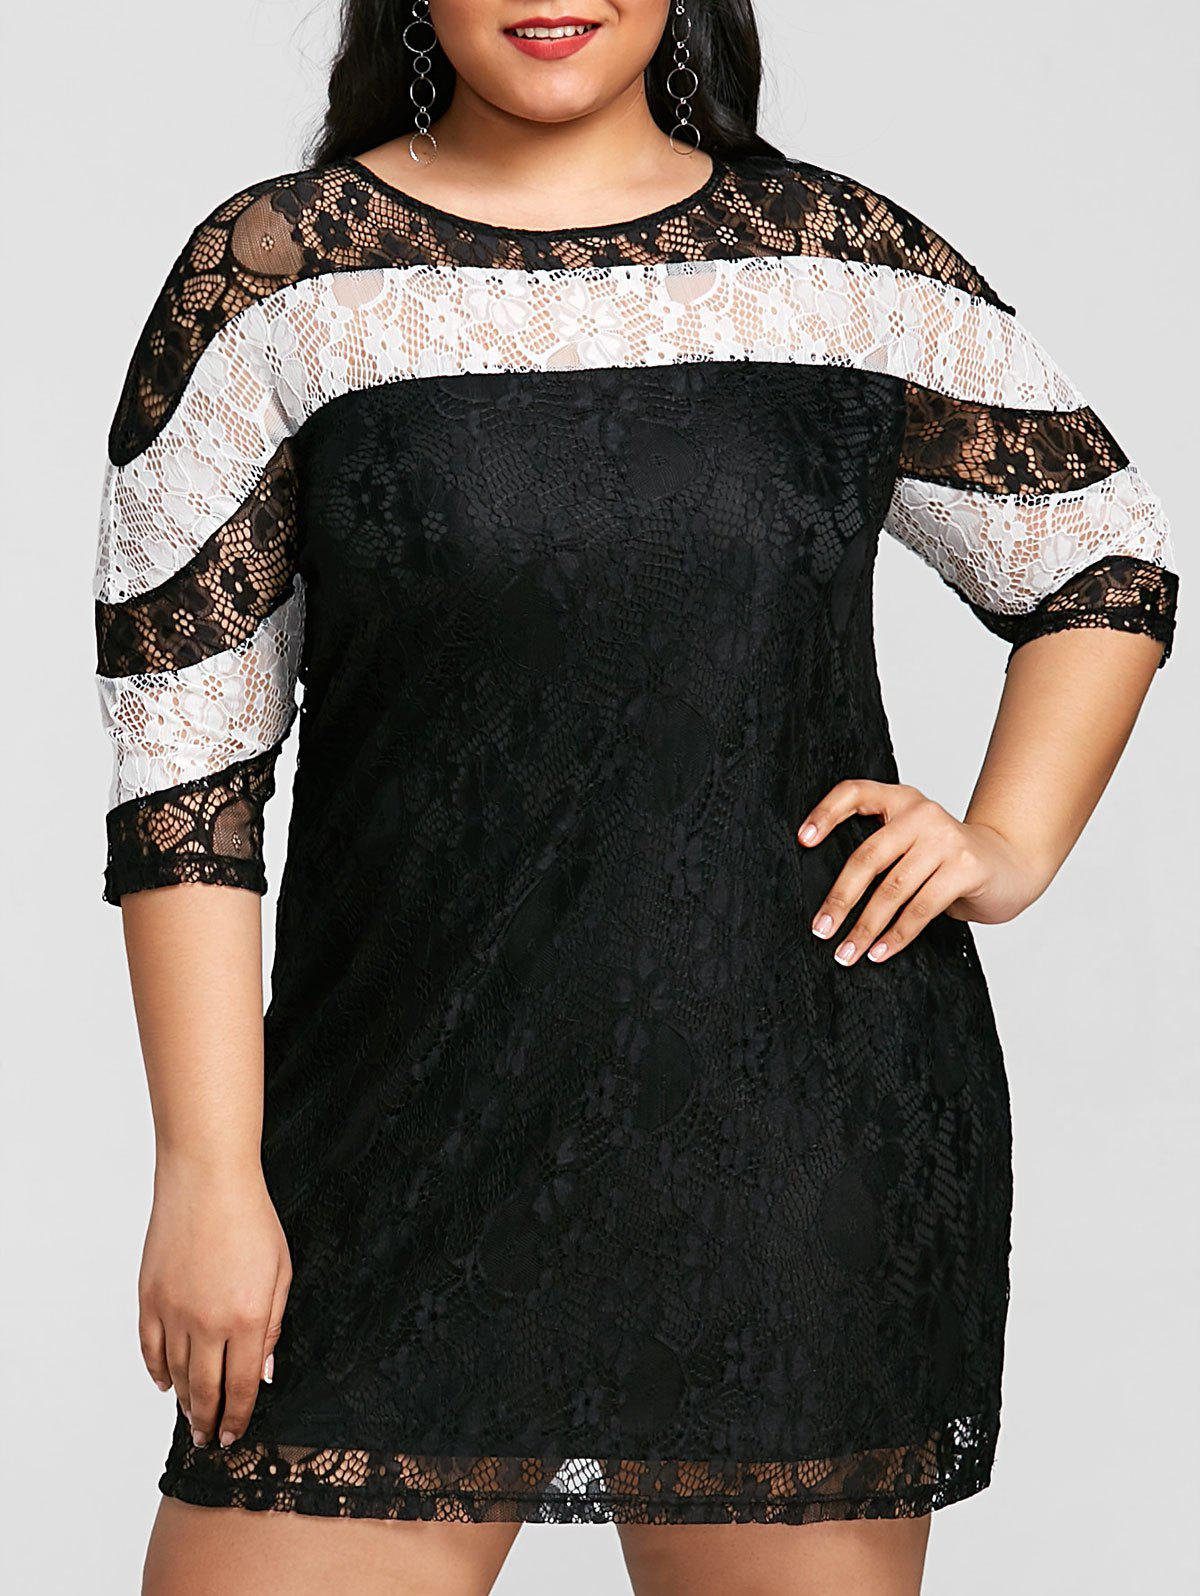 Color Contrast Plus Size Mini Lace Dress - WHITE/BLACK 2XL